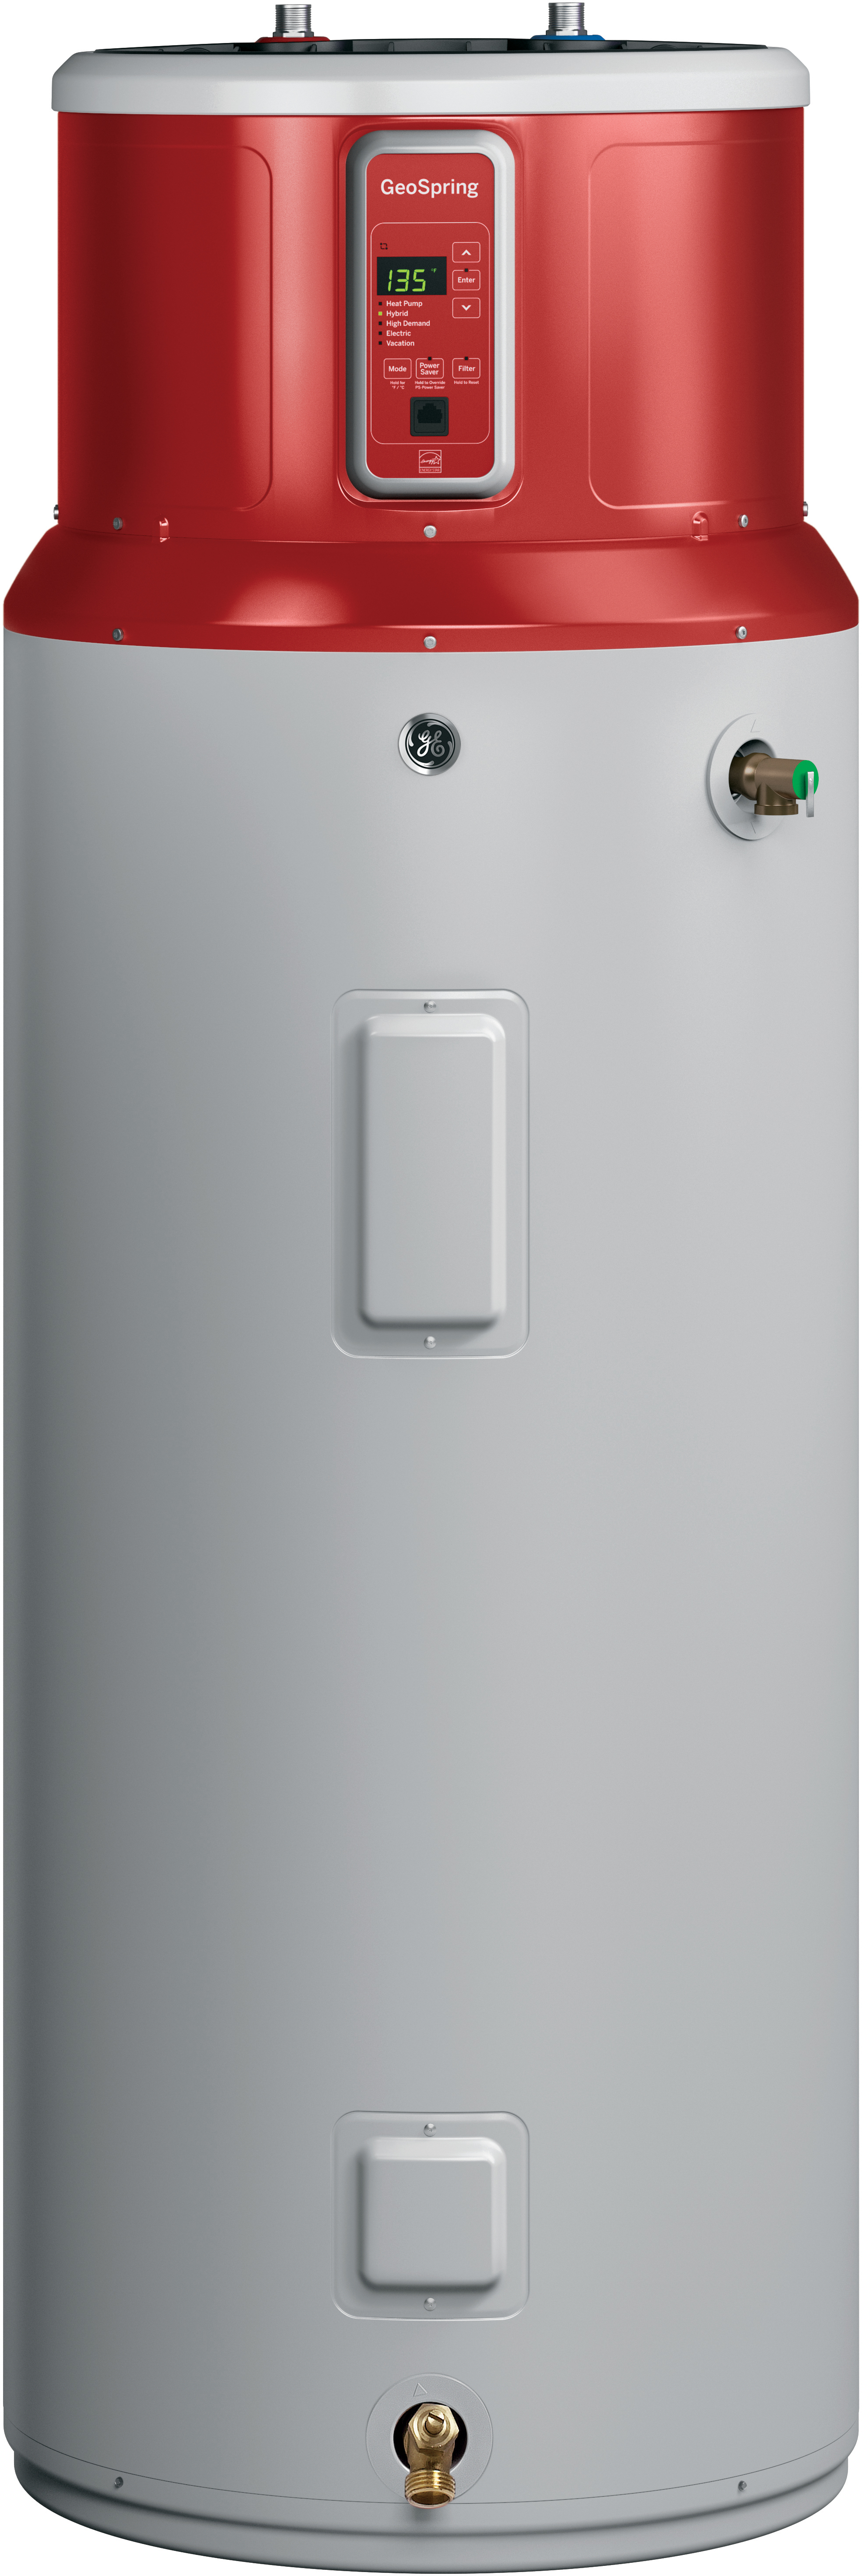 Ge Introduces 80 Gallon Geospring Hybrid Electric Water Heater Made In Louisville Ky Water Heater Electric Heat Pump Heat Pump Water Heater